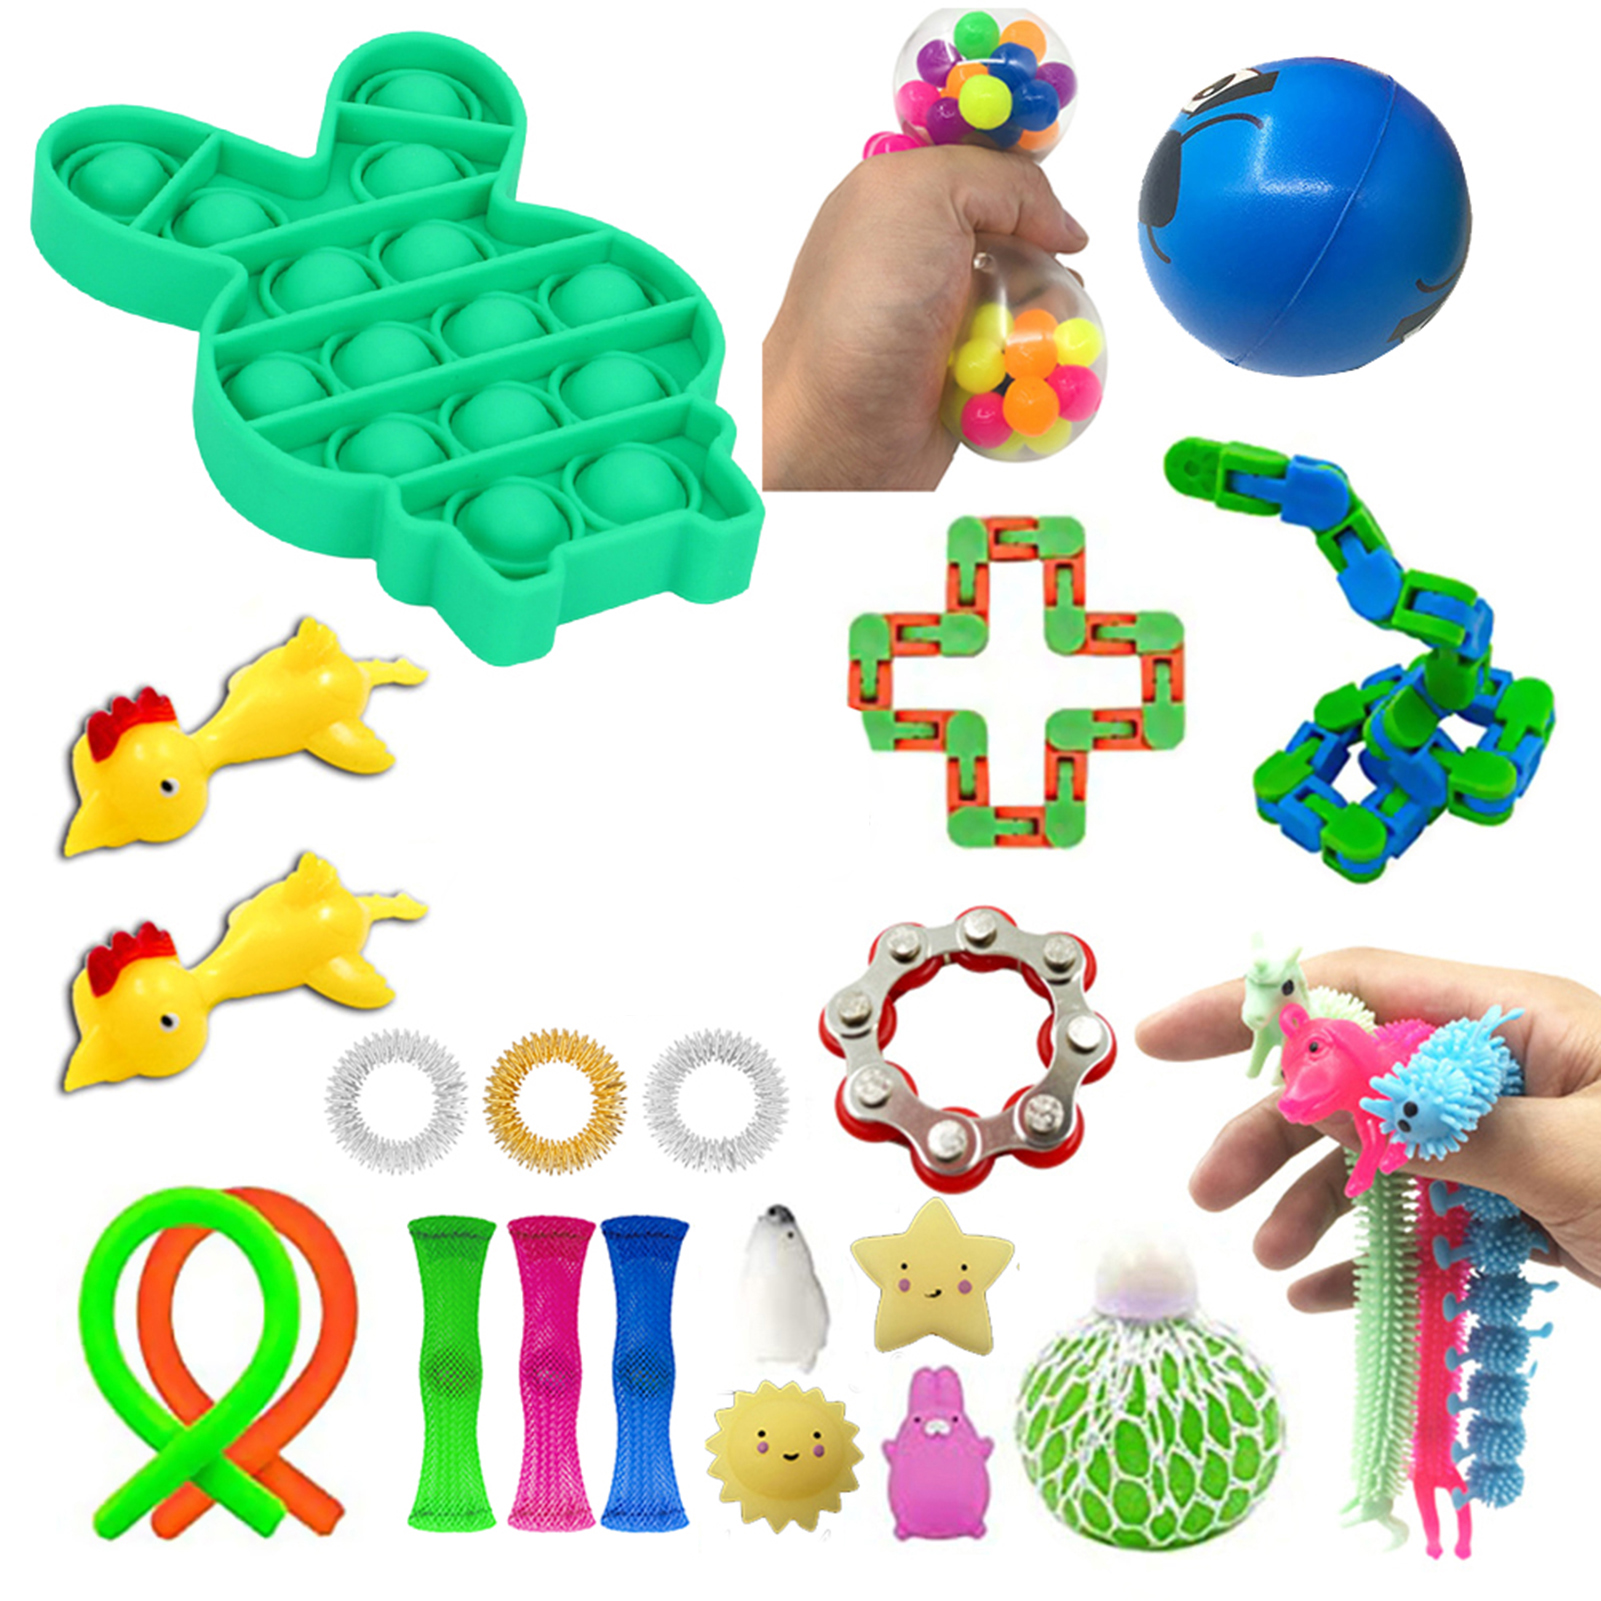 24PCS Pack Fidget Sensory Toy Set Stress Relief Toys Autism Anxiety Relief Stress Pop Bubble Fidget Toys For Kids Adults enlarge